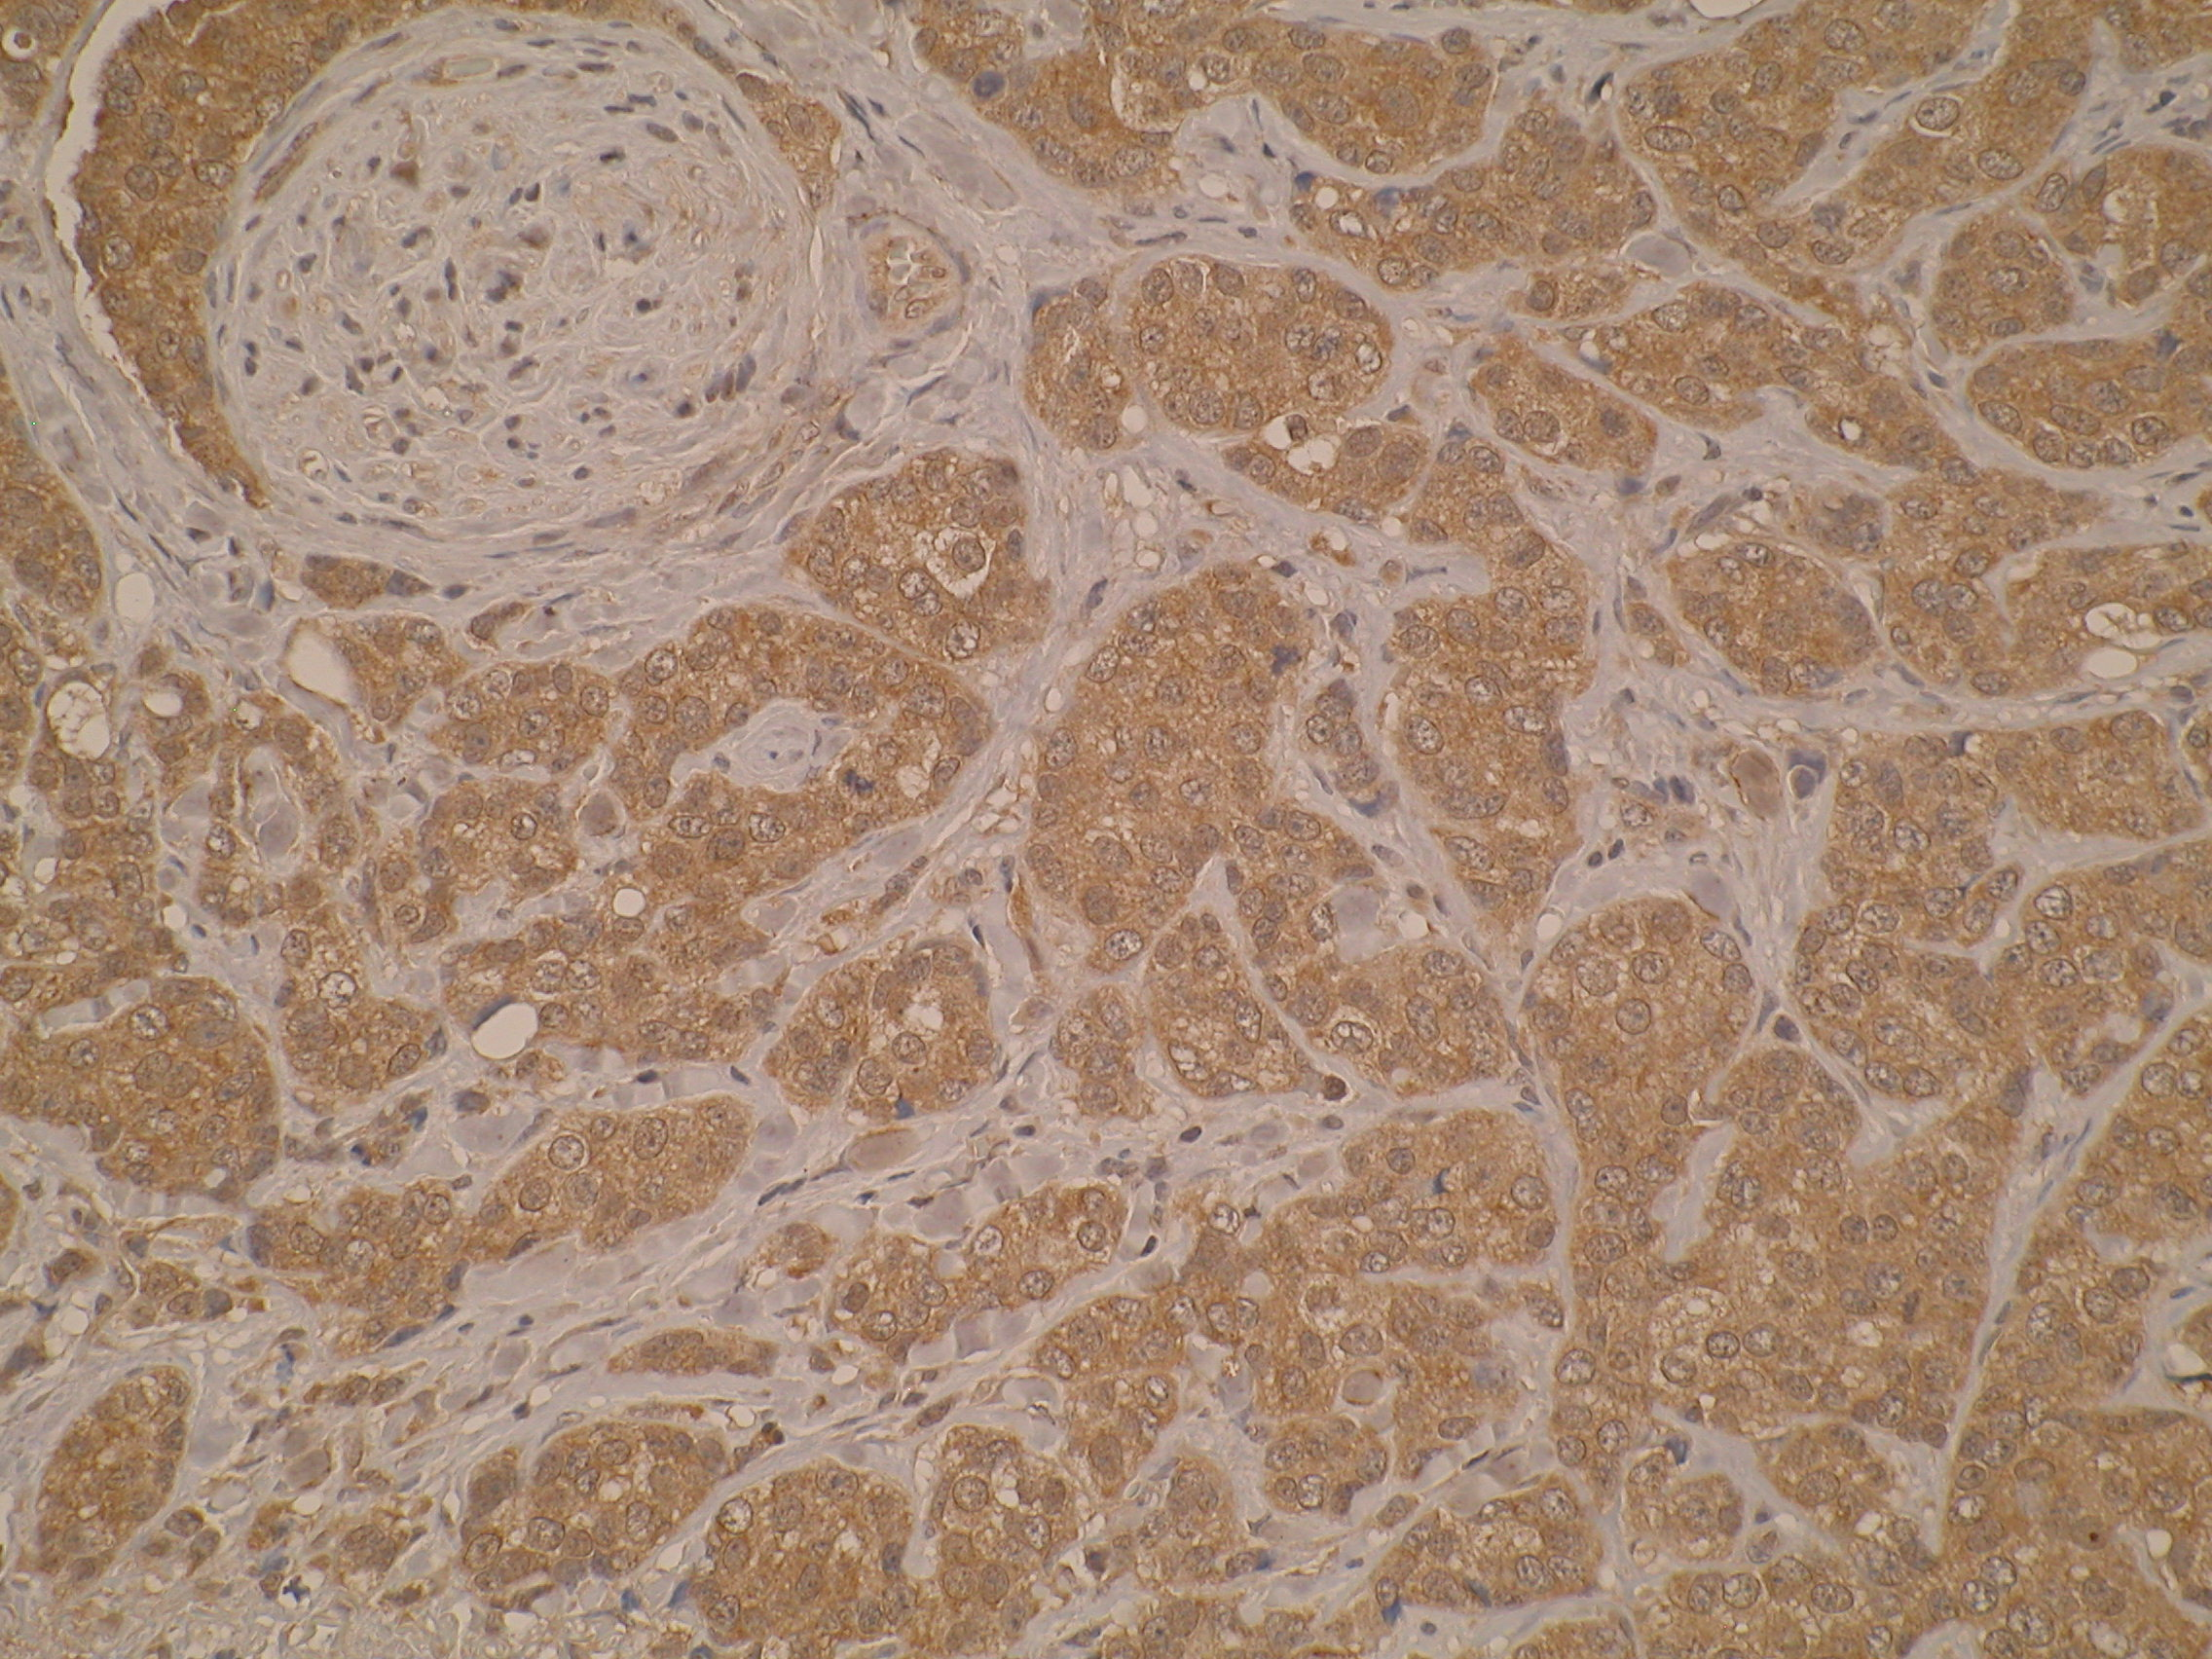 Immunohistochemistry was performed on formalin-fixed, paraffin-embedded human breast cancer tissue sections using Anti-FANCB [M38P3E10]. The antibody shows both nuclear and cytoplasmic staining but it is predominately cytoplasmic.